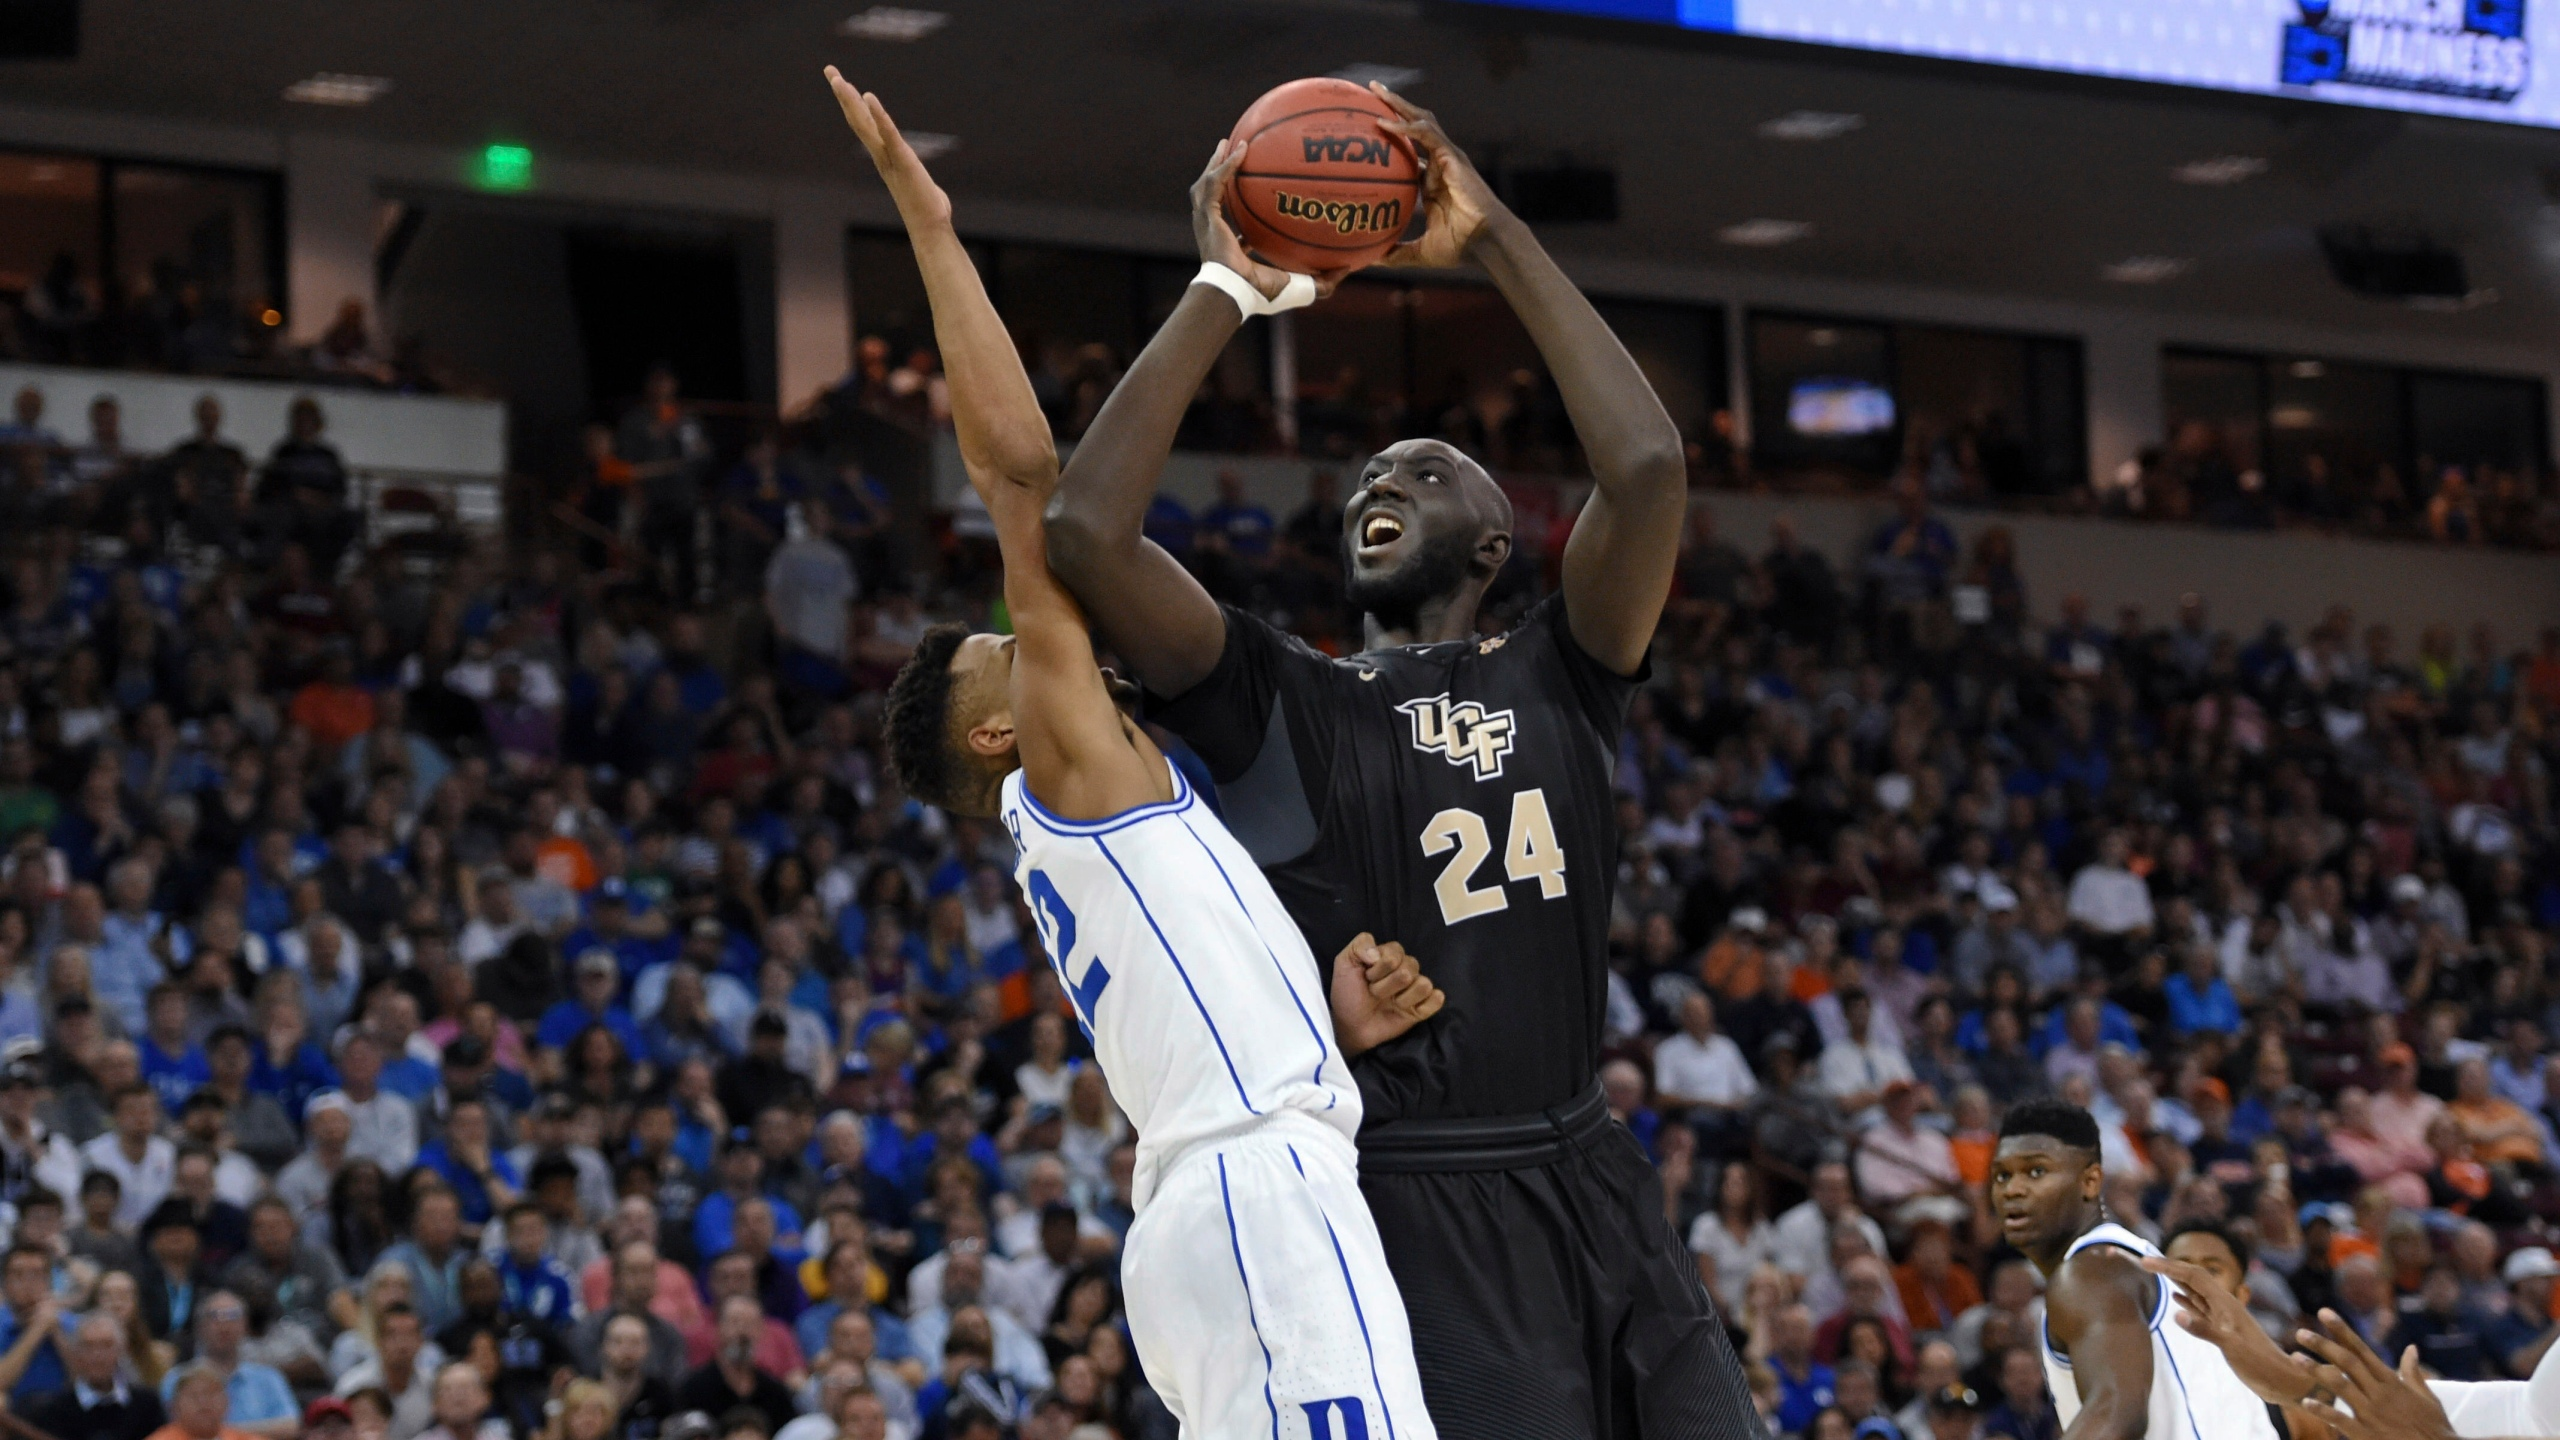 NCAA_UCF_Duke_Basketball_51617-159532.jpg64593741